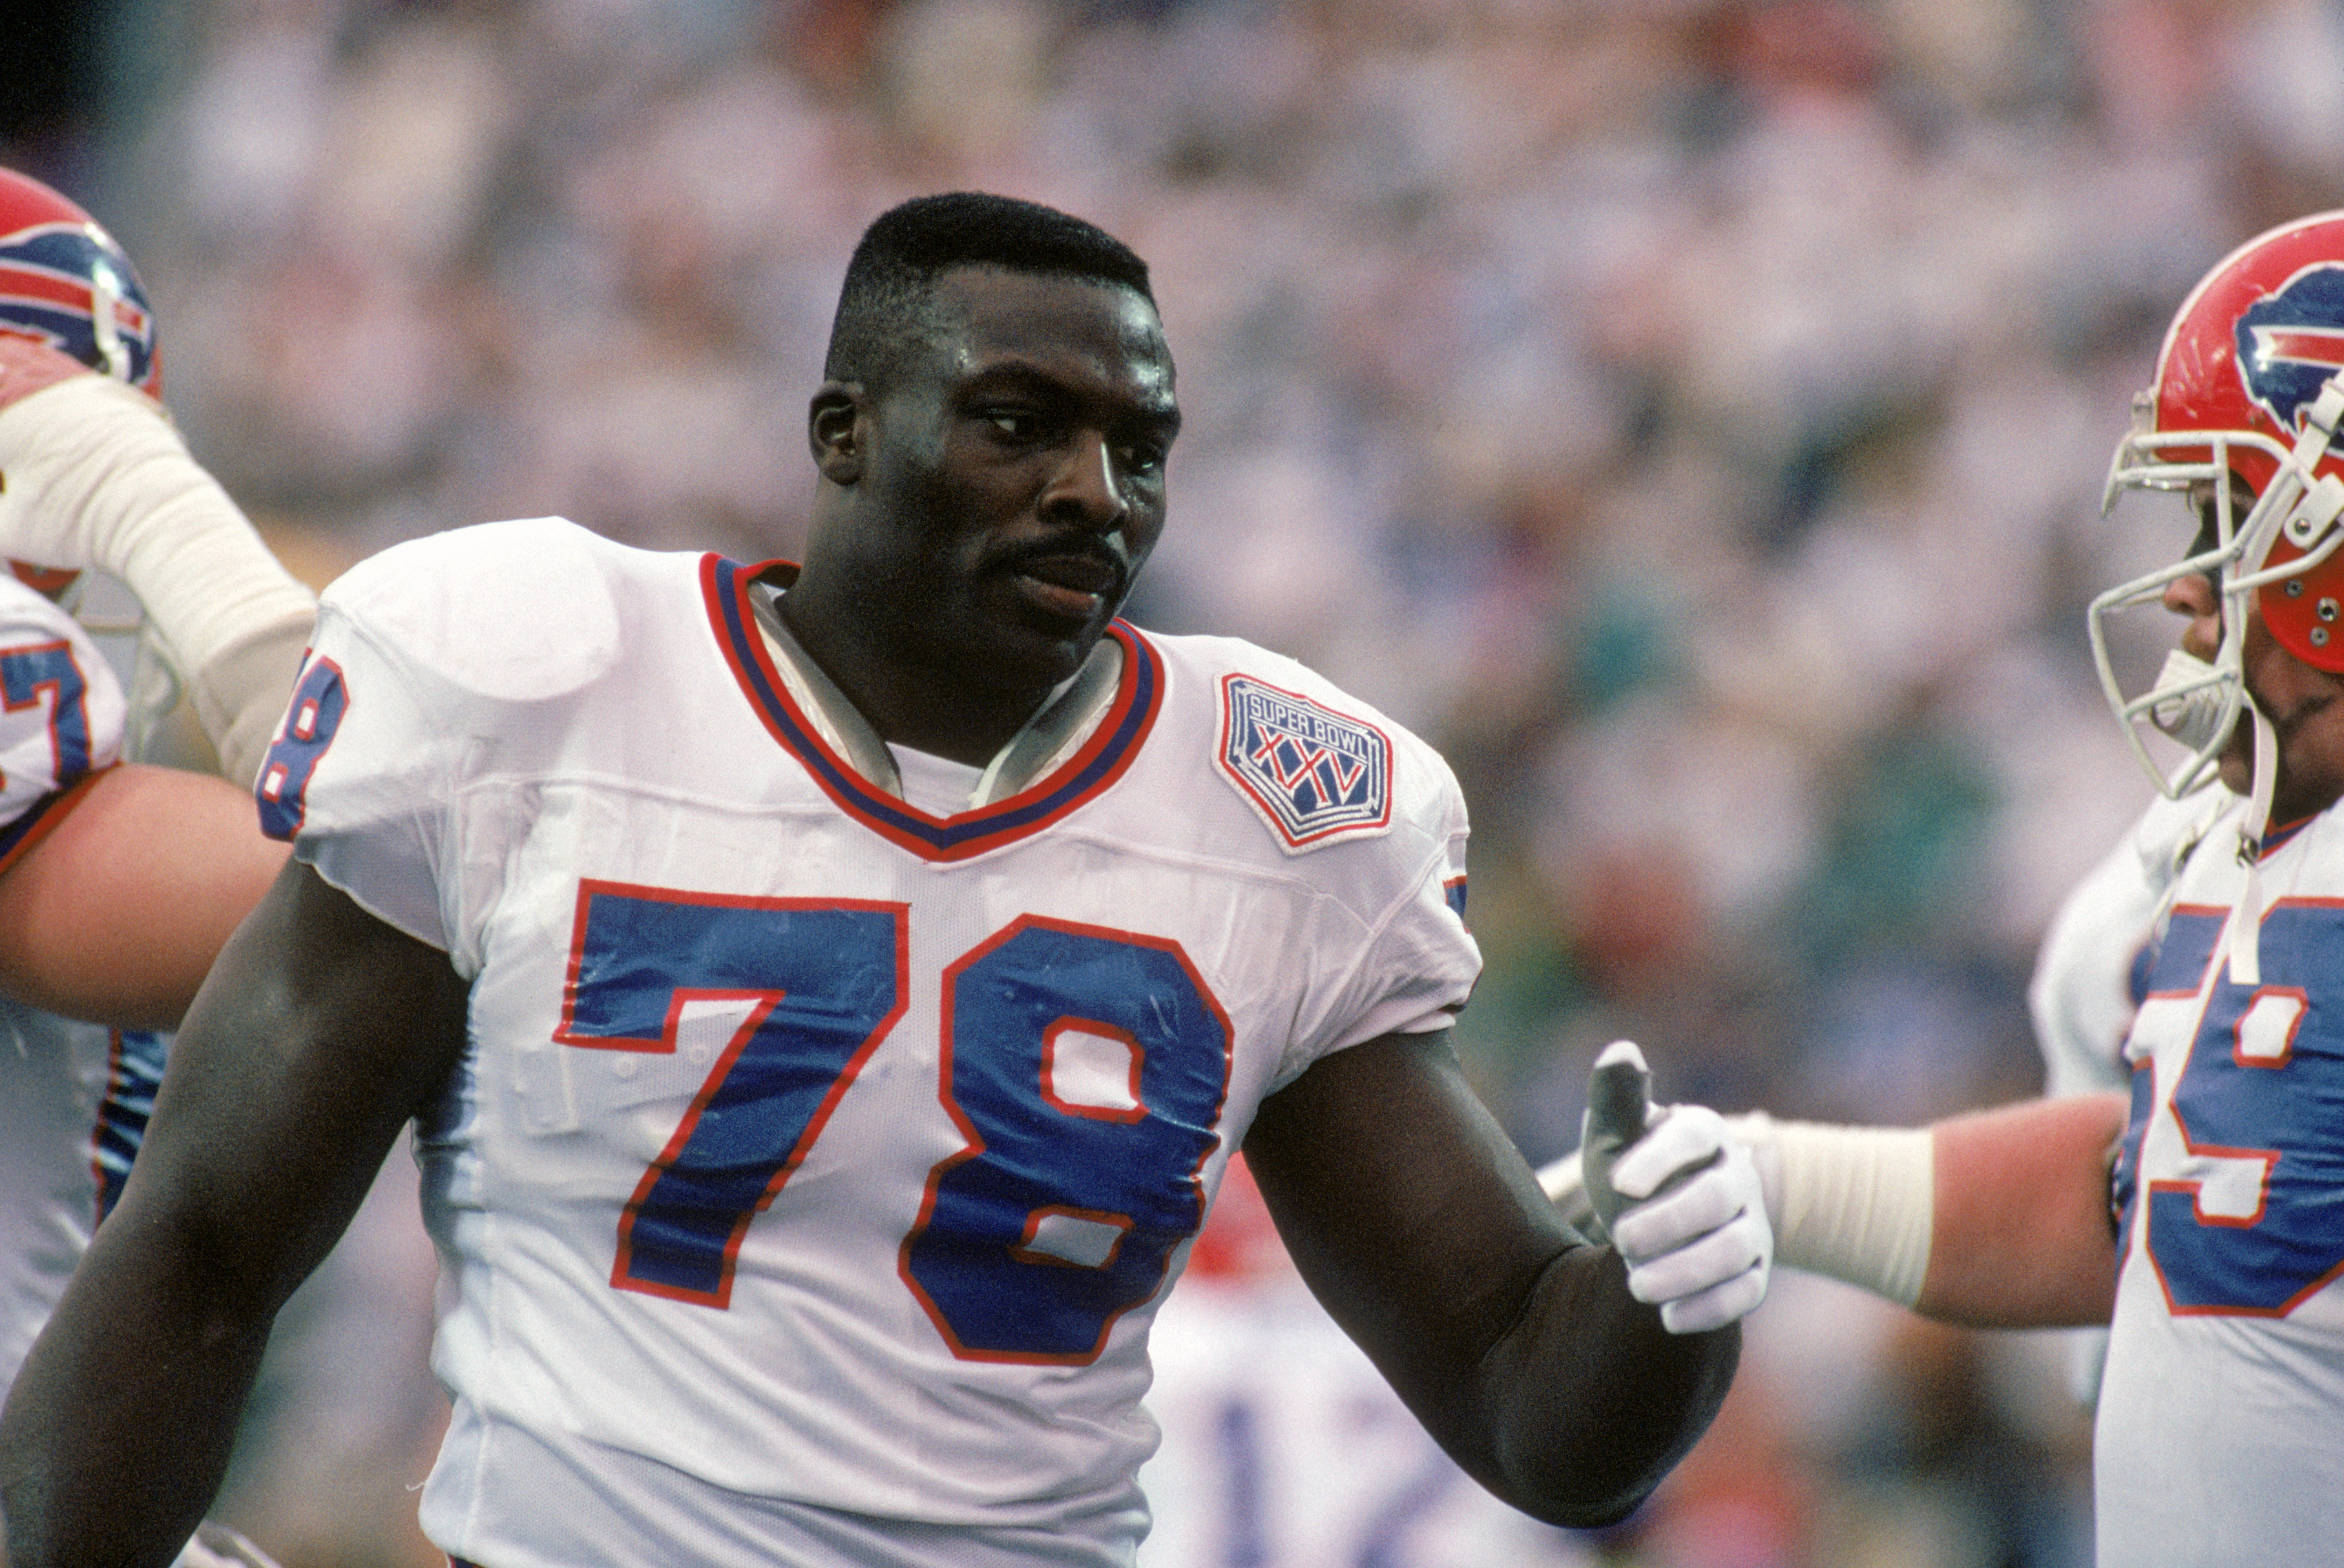 TAMPA, FL - JANUARY 27:  Defensive end Bruce Smith #78 of the Buffalo Bills on the field during Super Bowl XXV against the New York Giants at Tampa Stadium on January 27, 1991 in Tampa, Florida.  The Giants won 20-19.  (Photo by George Rose/Getty Images)